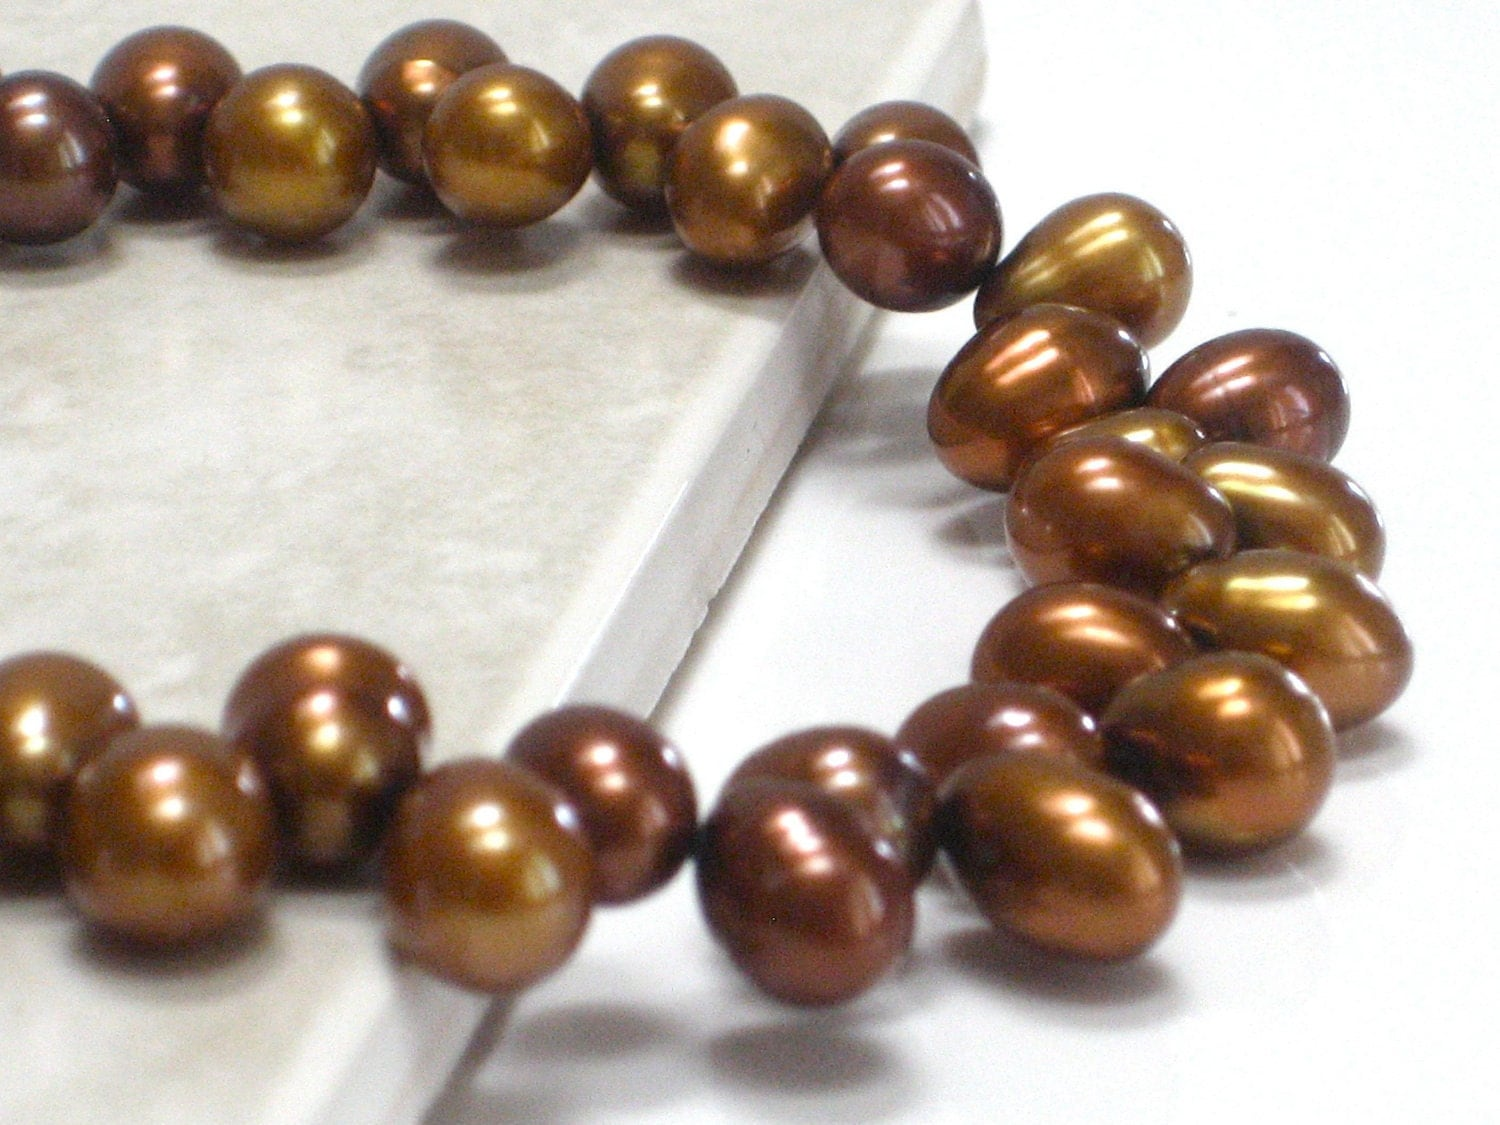 Brown Bracelet, Spice Pearls Nutmeg Bronze Metallic Pearls Chunky Bracelet Woodland Fashion- Early Harvest - CCARIA